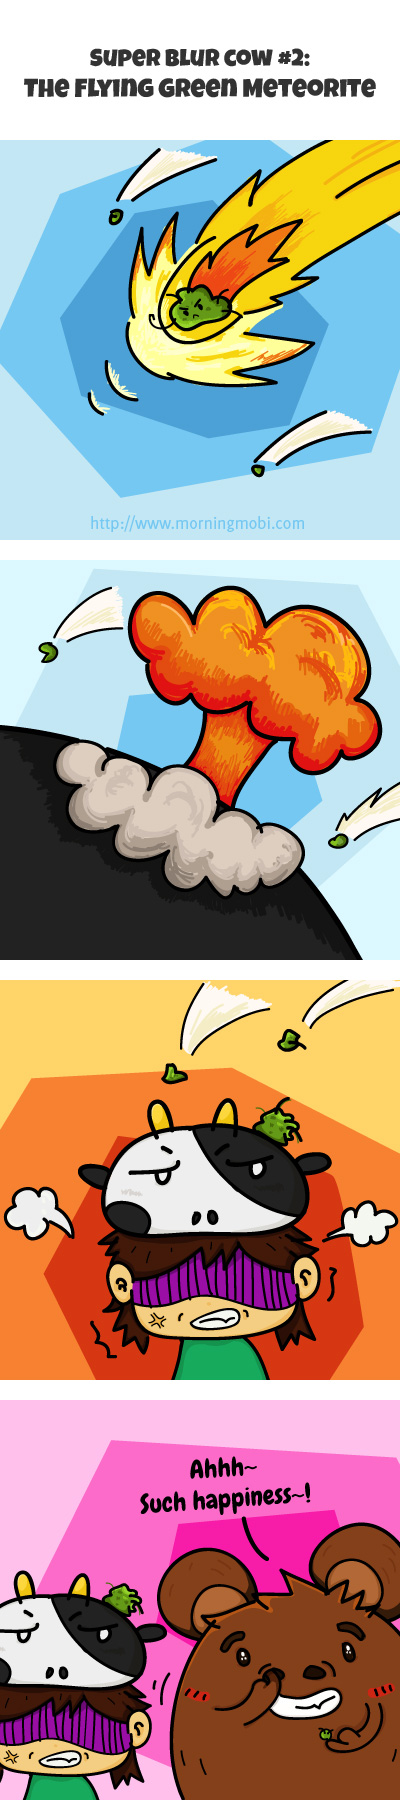 Super Blur Cow The Flying Green Meteorite - MorningMobi Web Comics